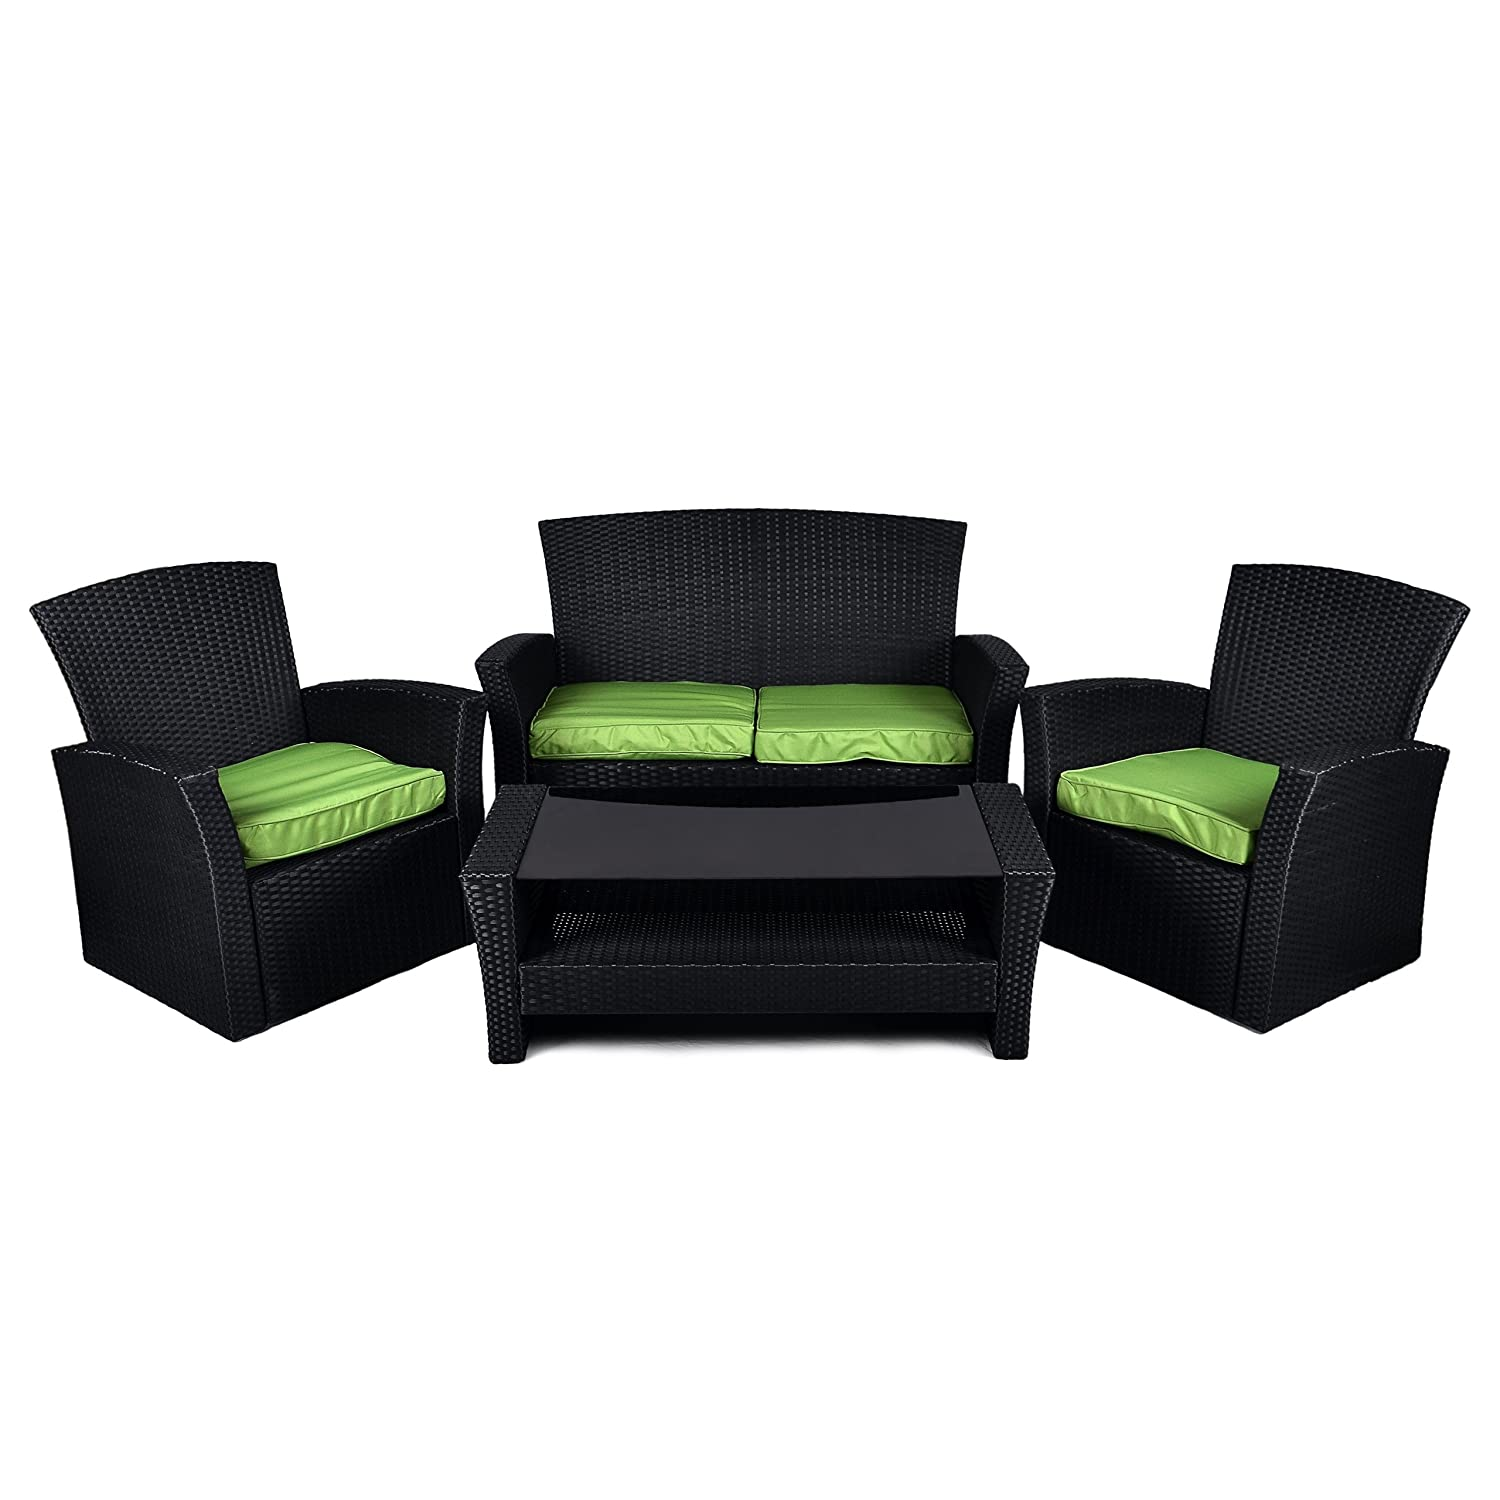 rattan set 4tlg mit glastisch gr n garnitur gartenm bel lounge. Black Bedroom Furniture Sets. Home Design Ideas